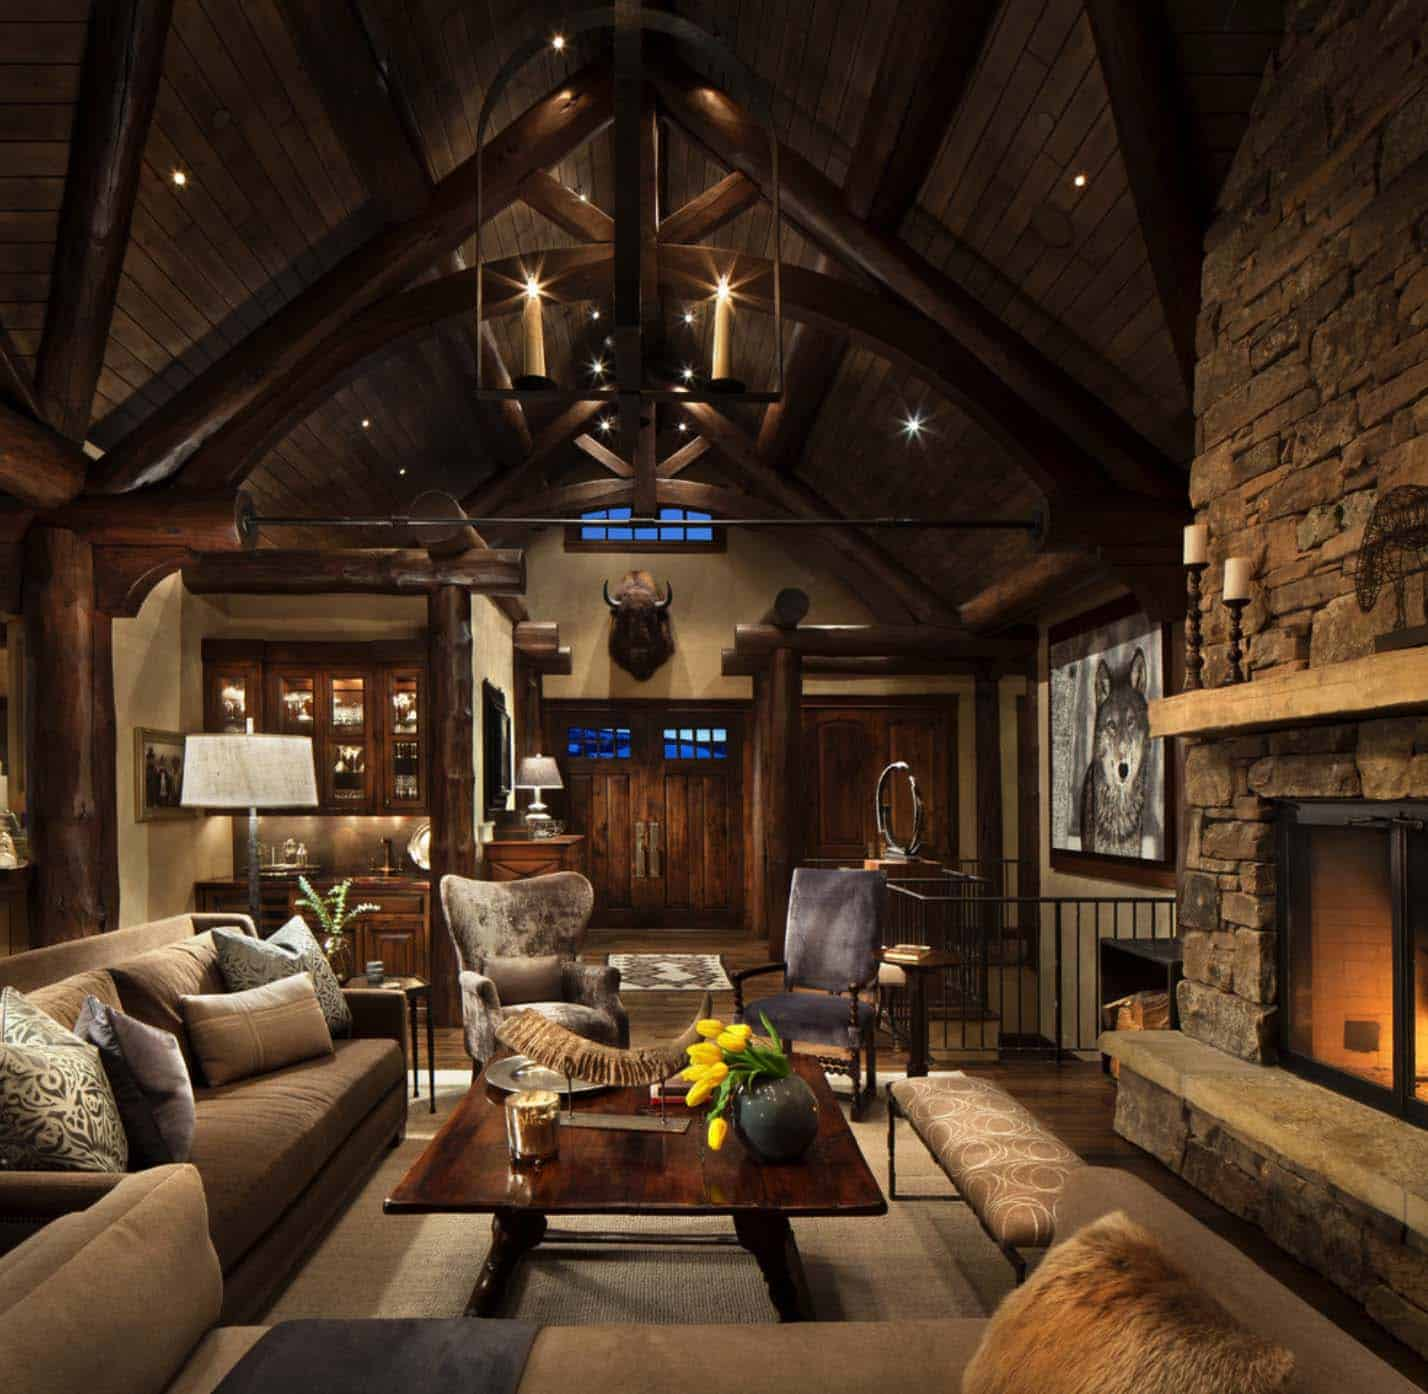 Exquisite mountain home remodel mixes rustic with modern in Big Sky